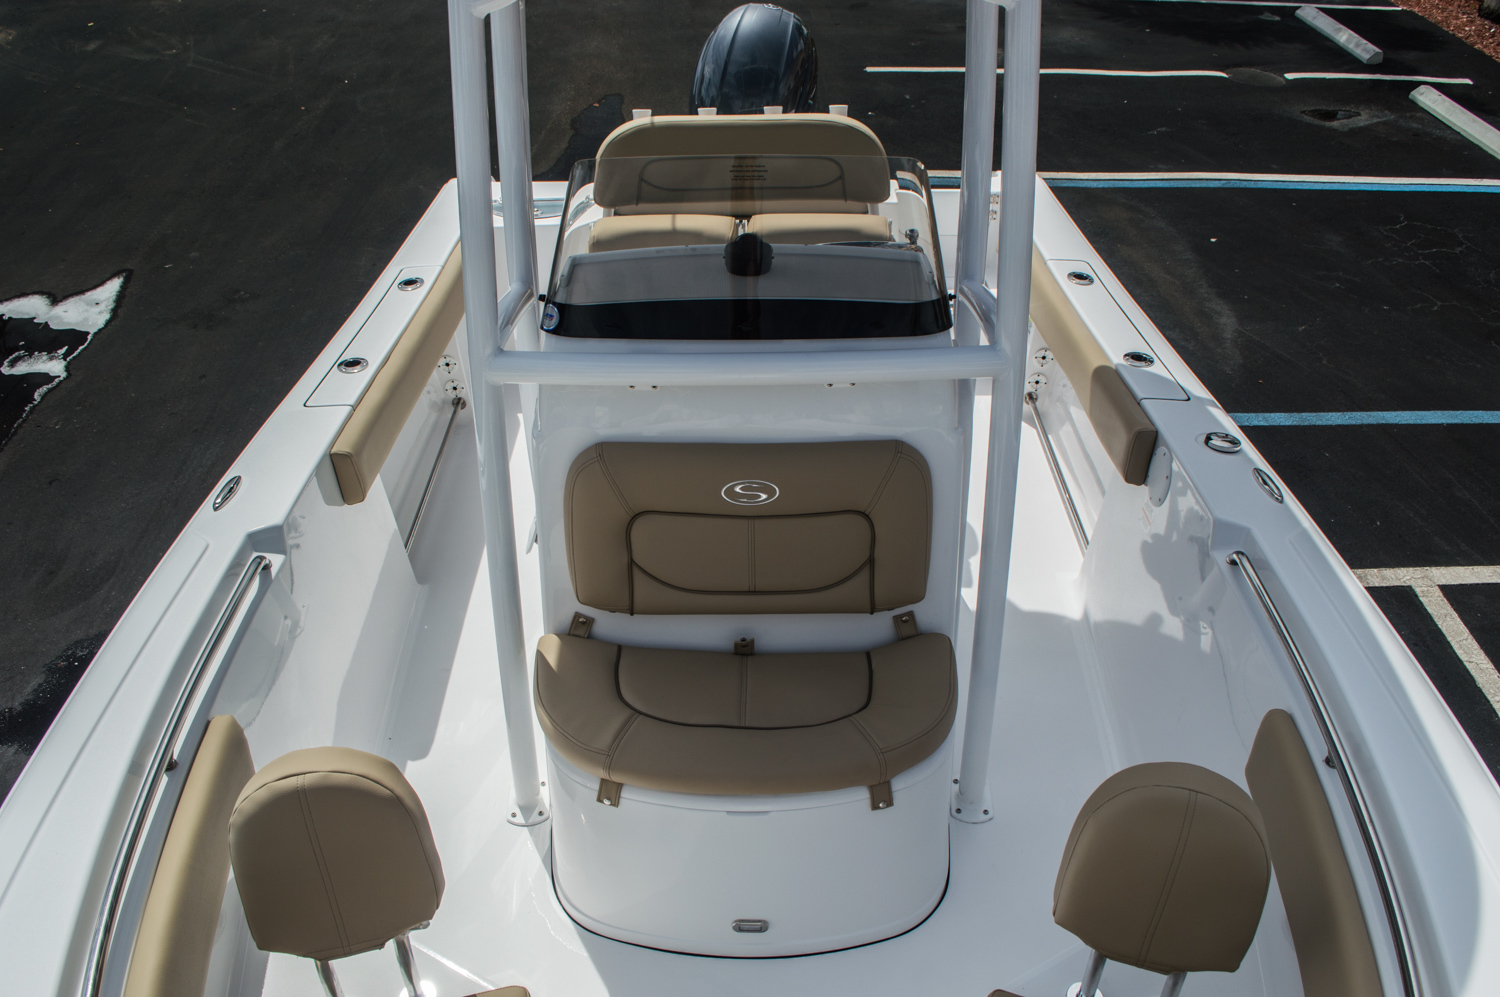 Thumbnail 19 for New 2016 Sportsman Open 212 Center Console boat for sale in Miami, FL